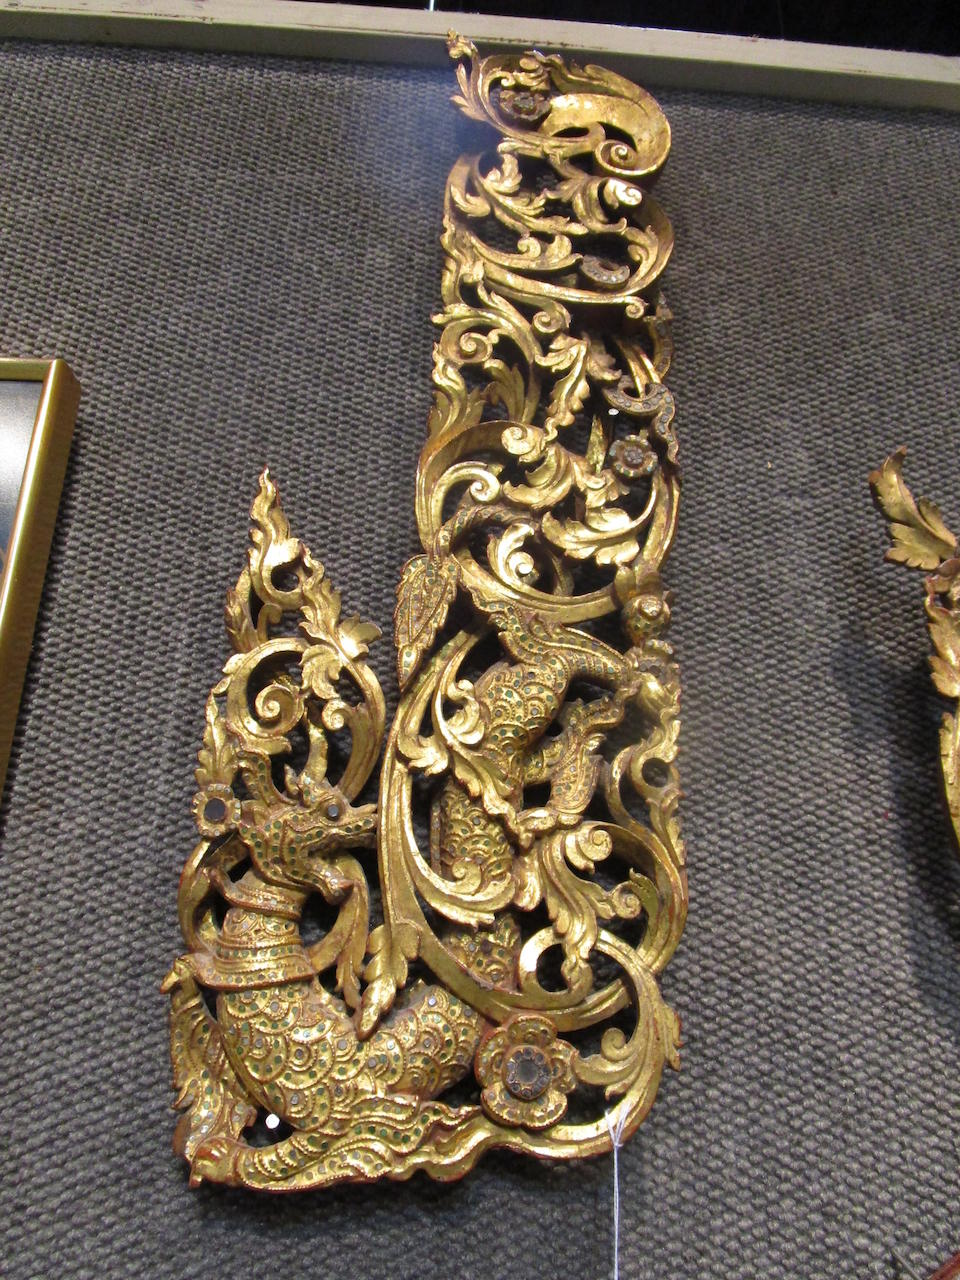 A group of three gilt lacquer and inset glass wood shrine panels Myanmar or Northern Thailand, 19th century